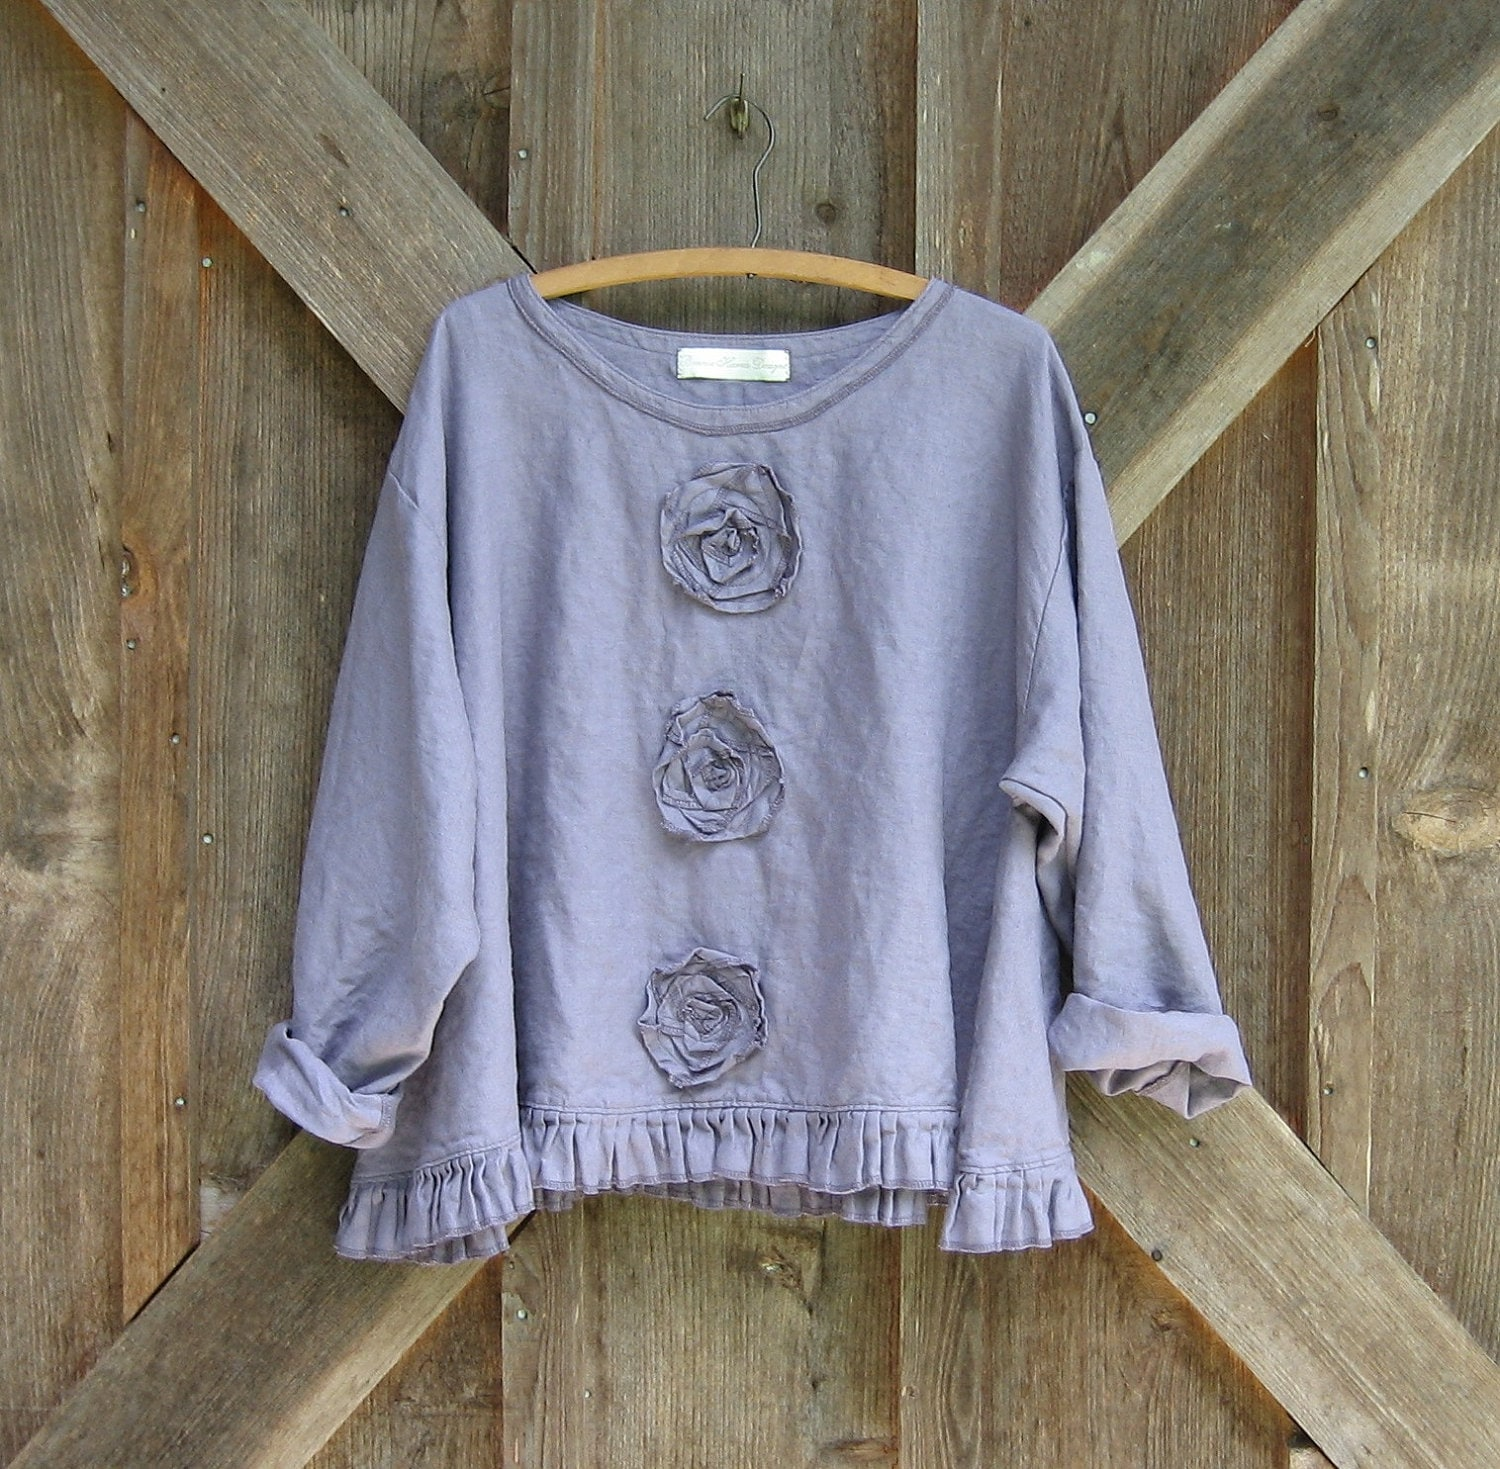 linen top Romance flare design in thistle dusty lavender with roses